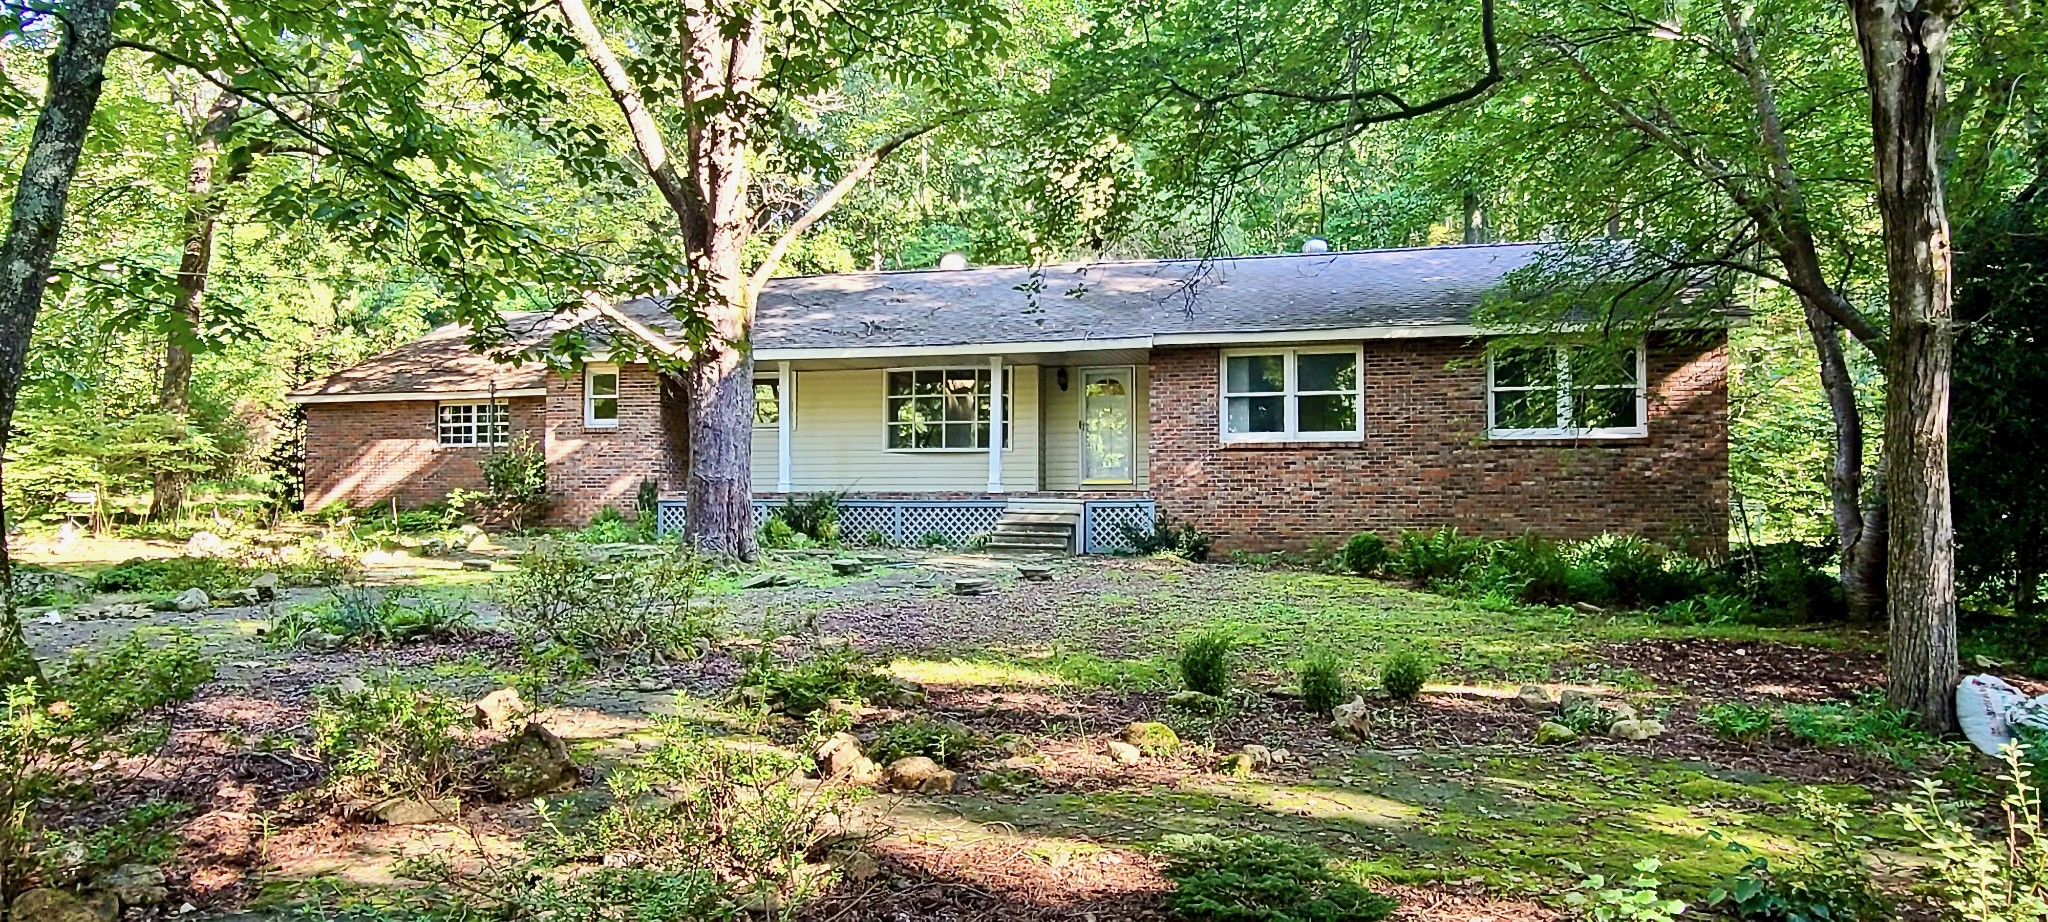 1702 State Hwy 48 S Property Photo - Centerville, TN real estate listing